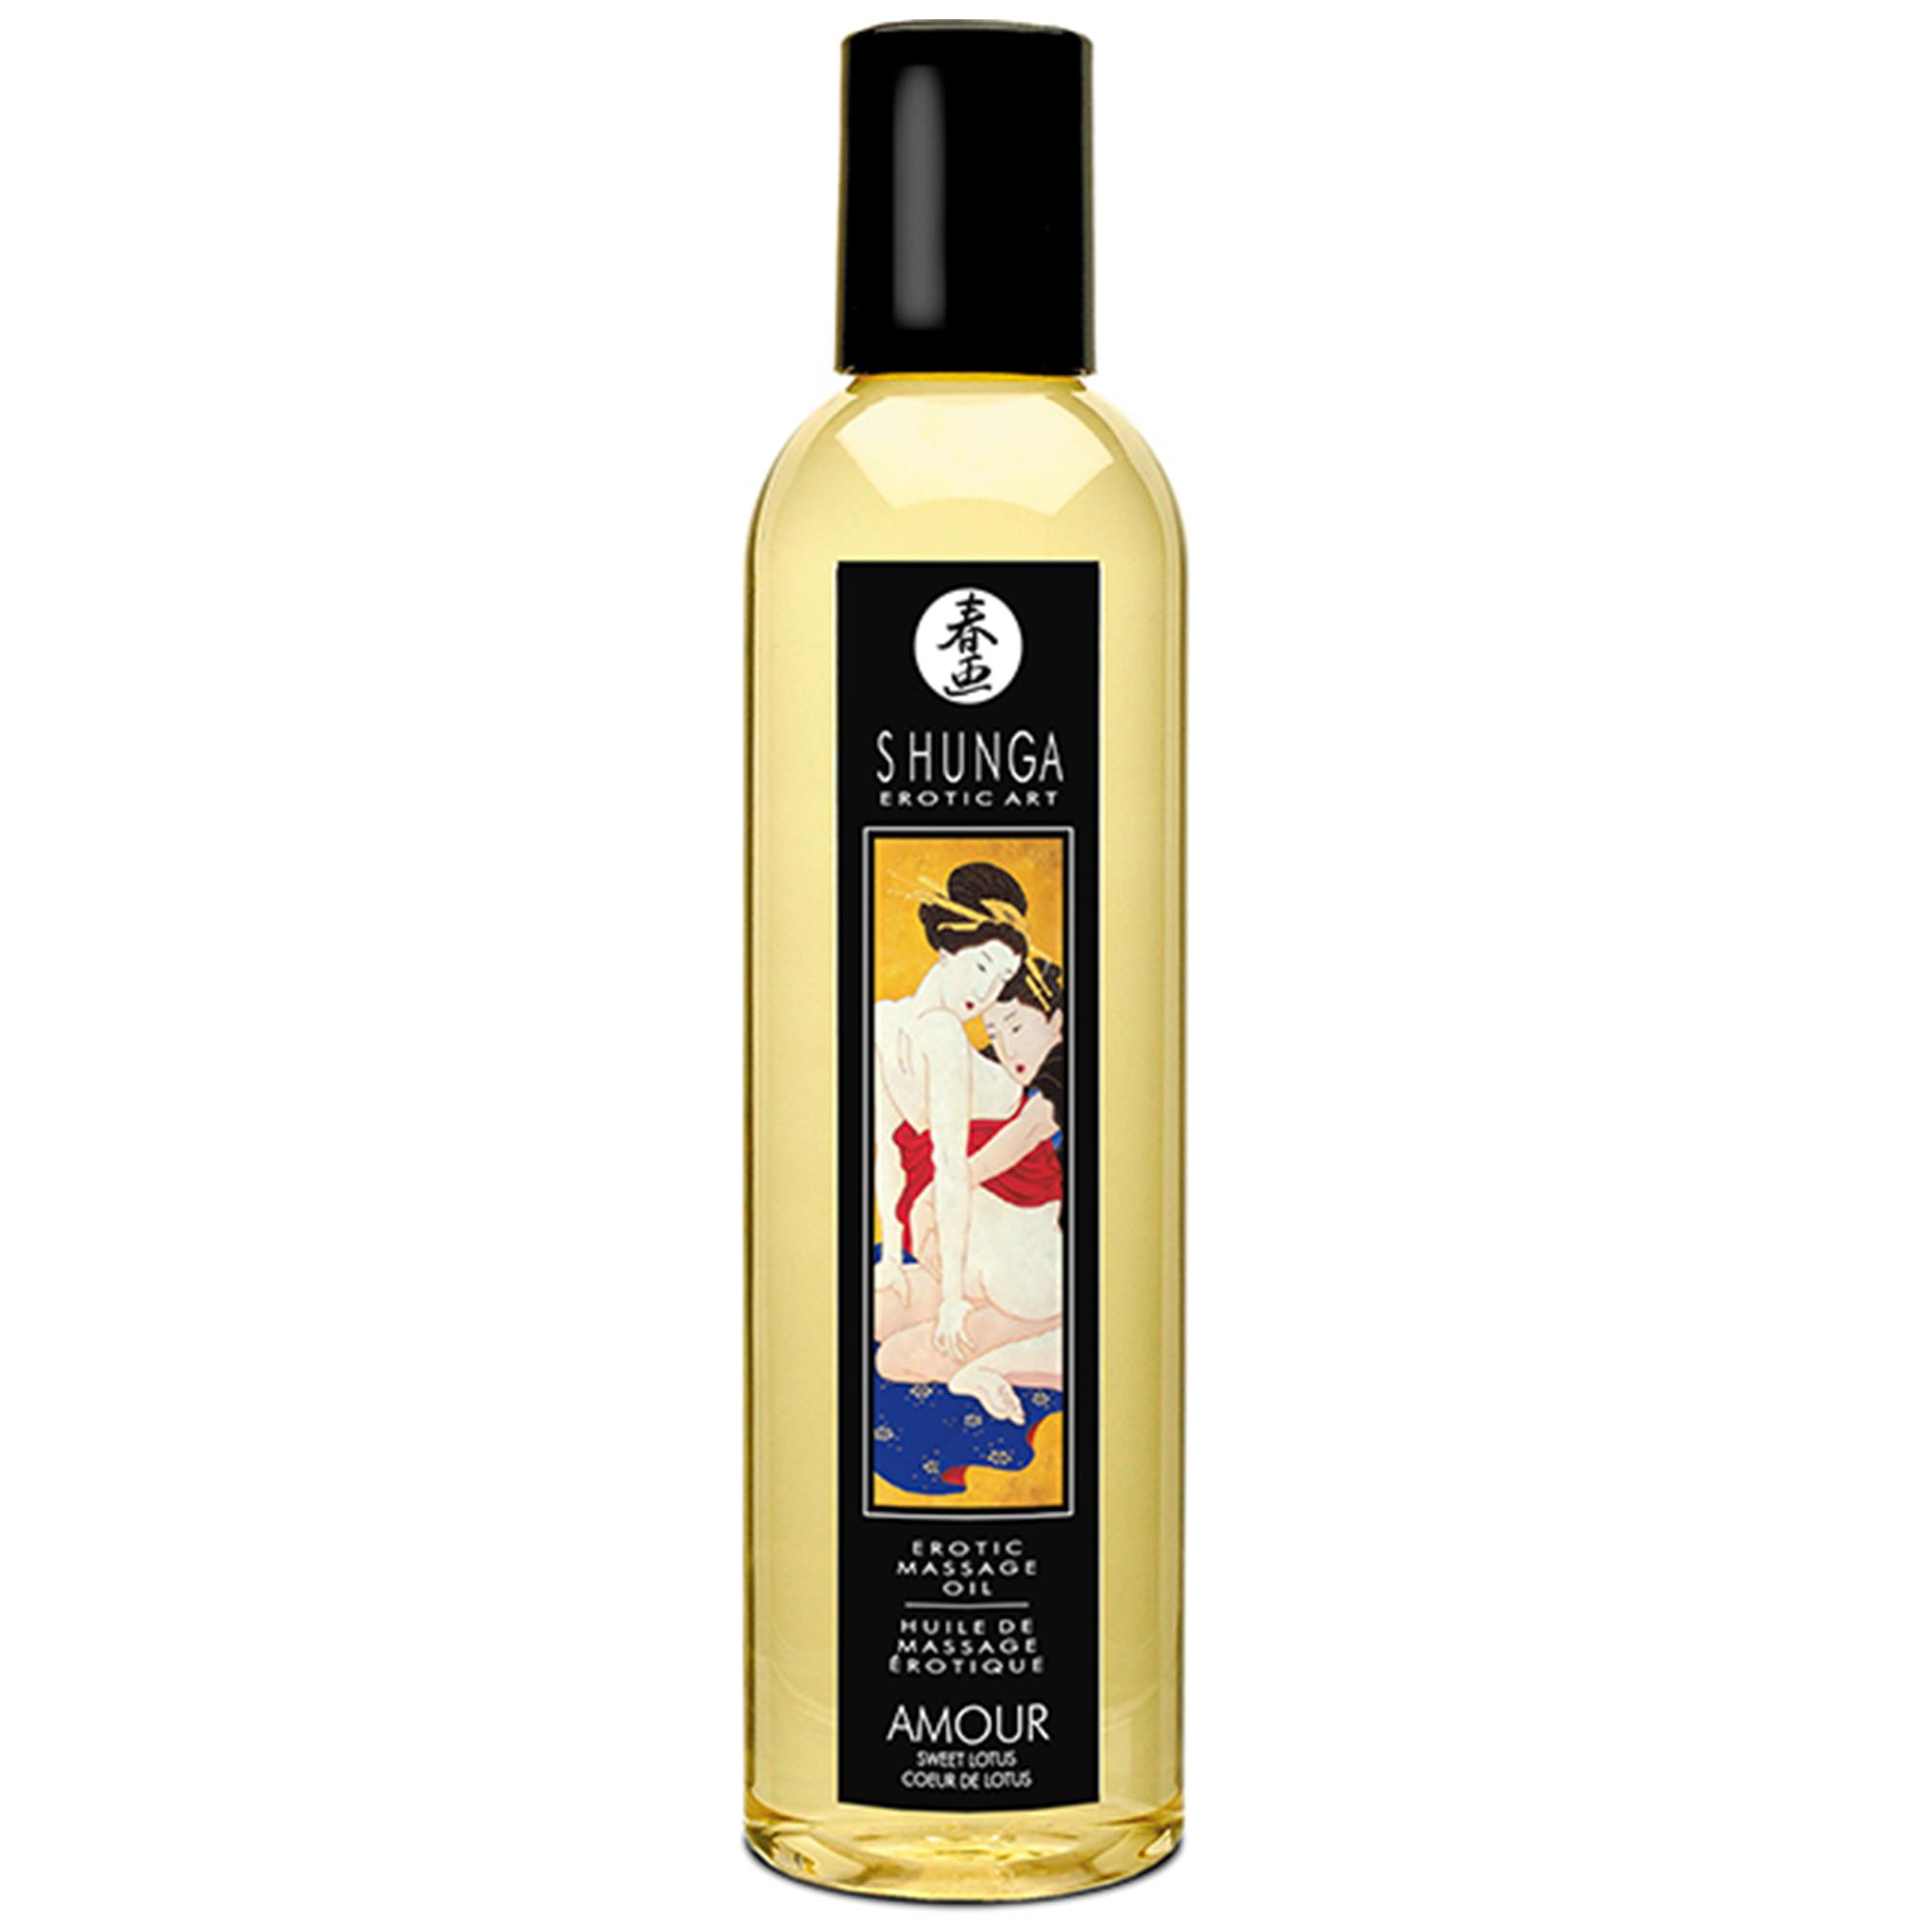 Massage Oil Sweet Lotus - Amour | Apotek, Massage, Massageolja | Intimast.se - Sexleksaker